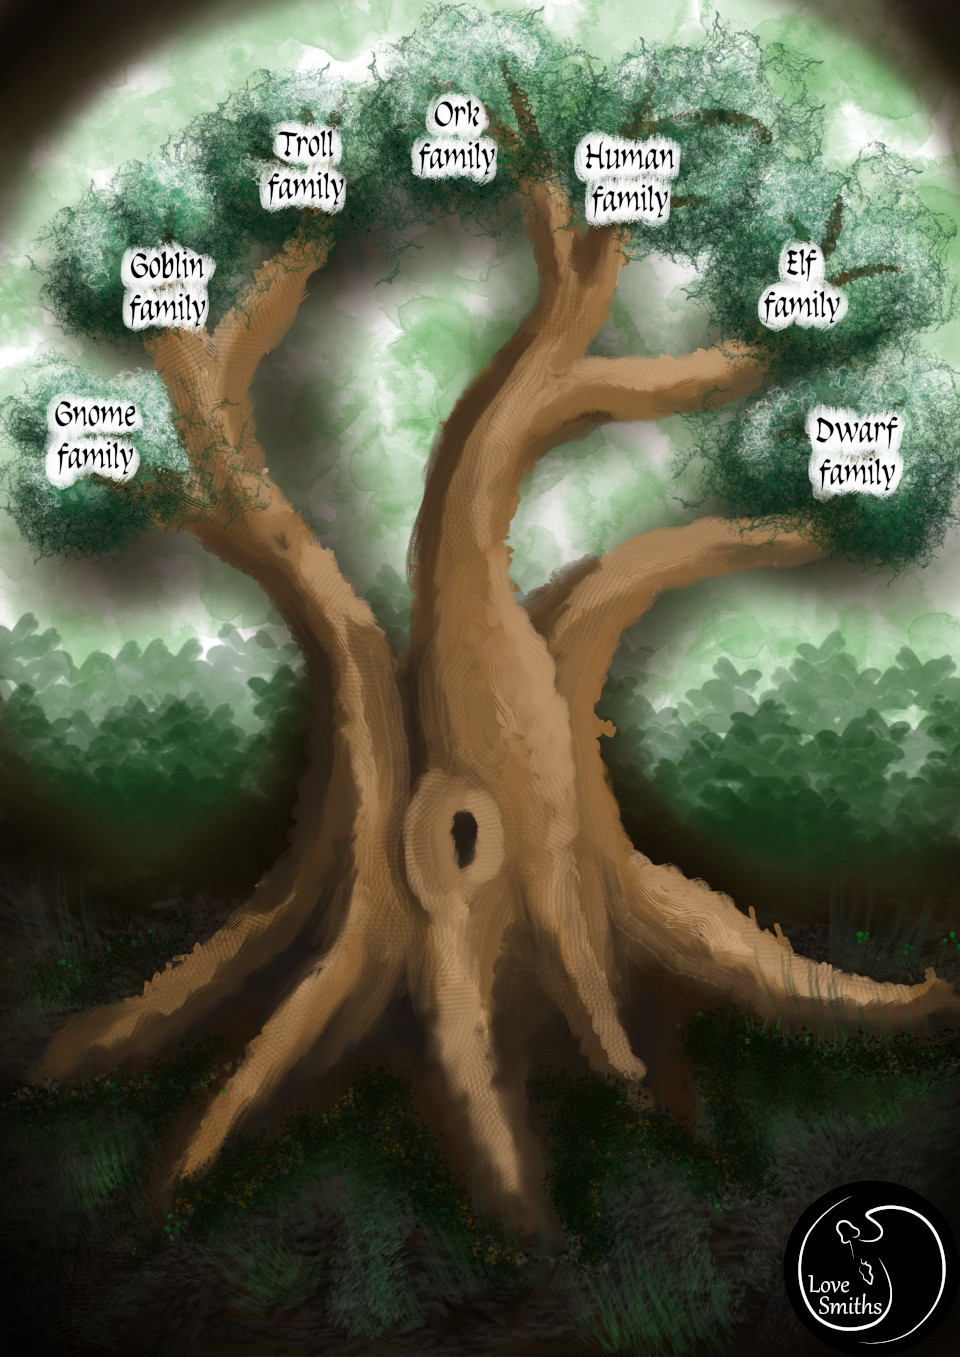 A genealogical tree of the several fantastic races of the Love Smiths showing how close each pair is related